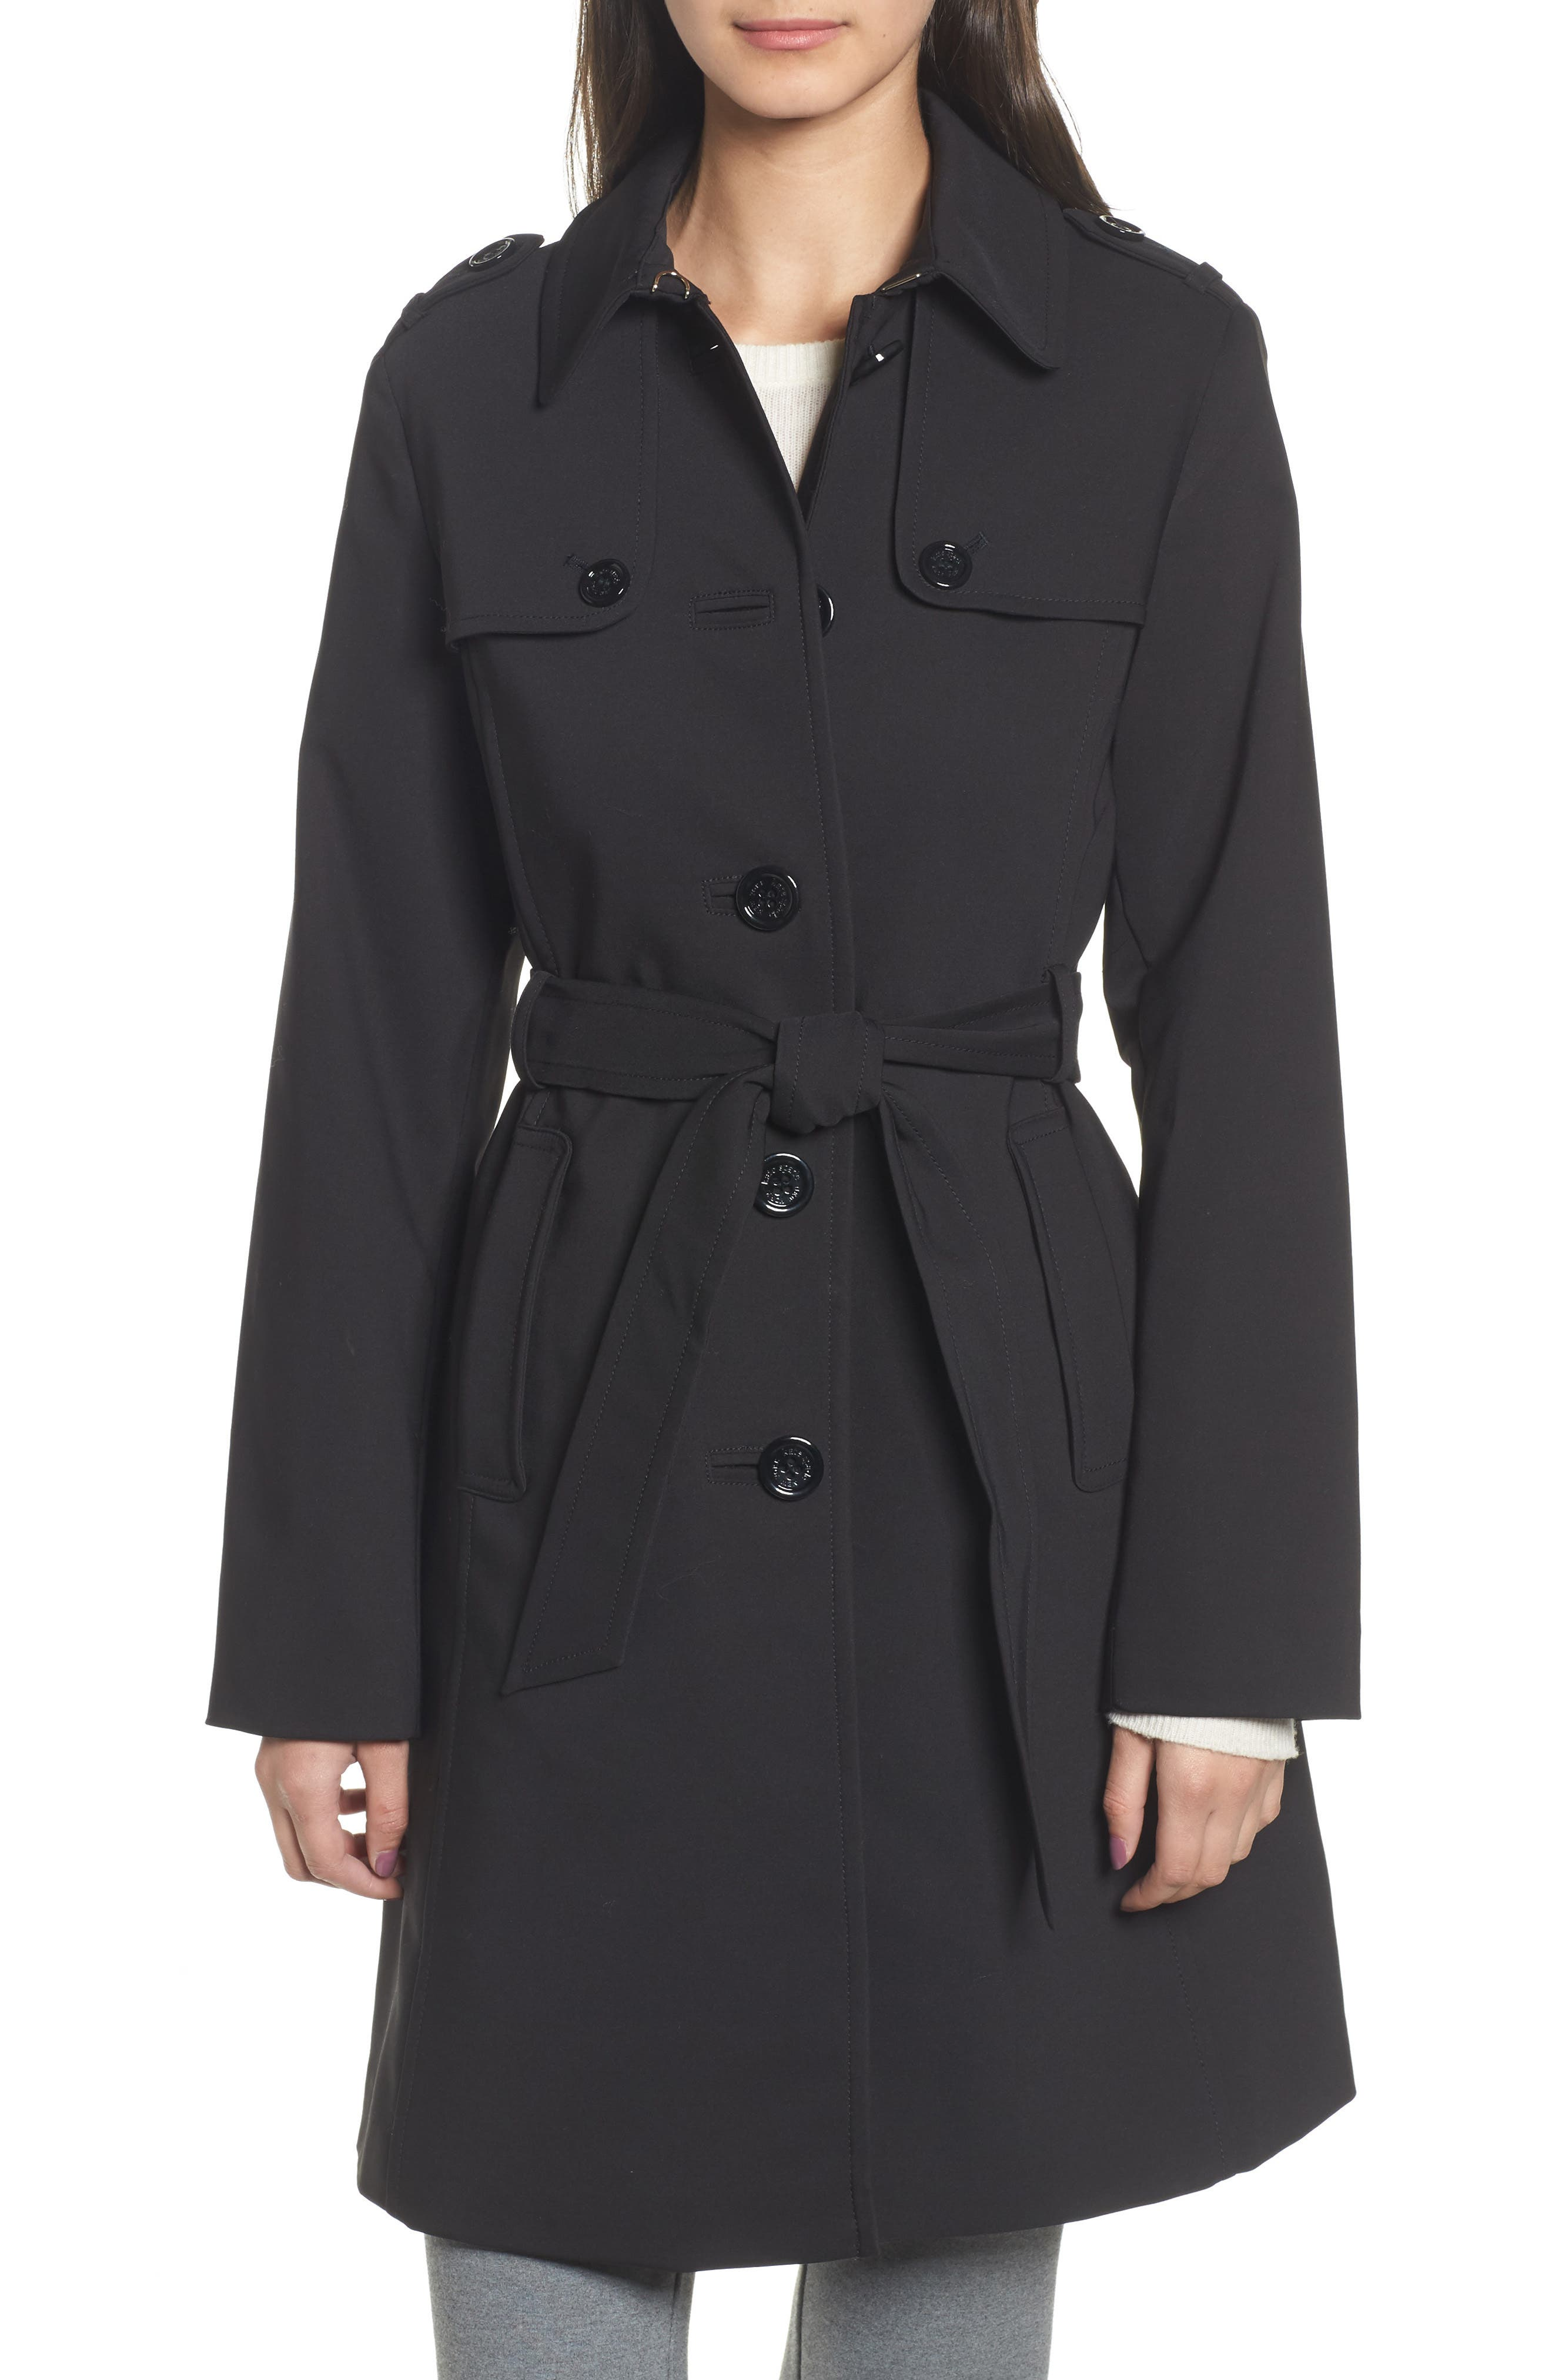 3-in-1 trench coat,                             Alternate thumbnail 4, color,                             001